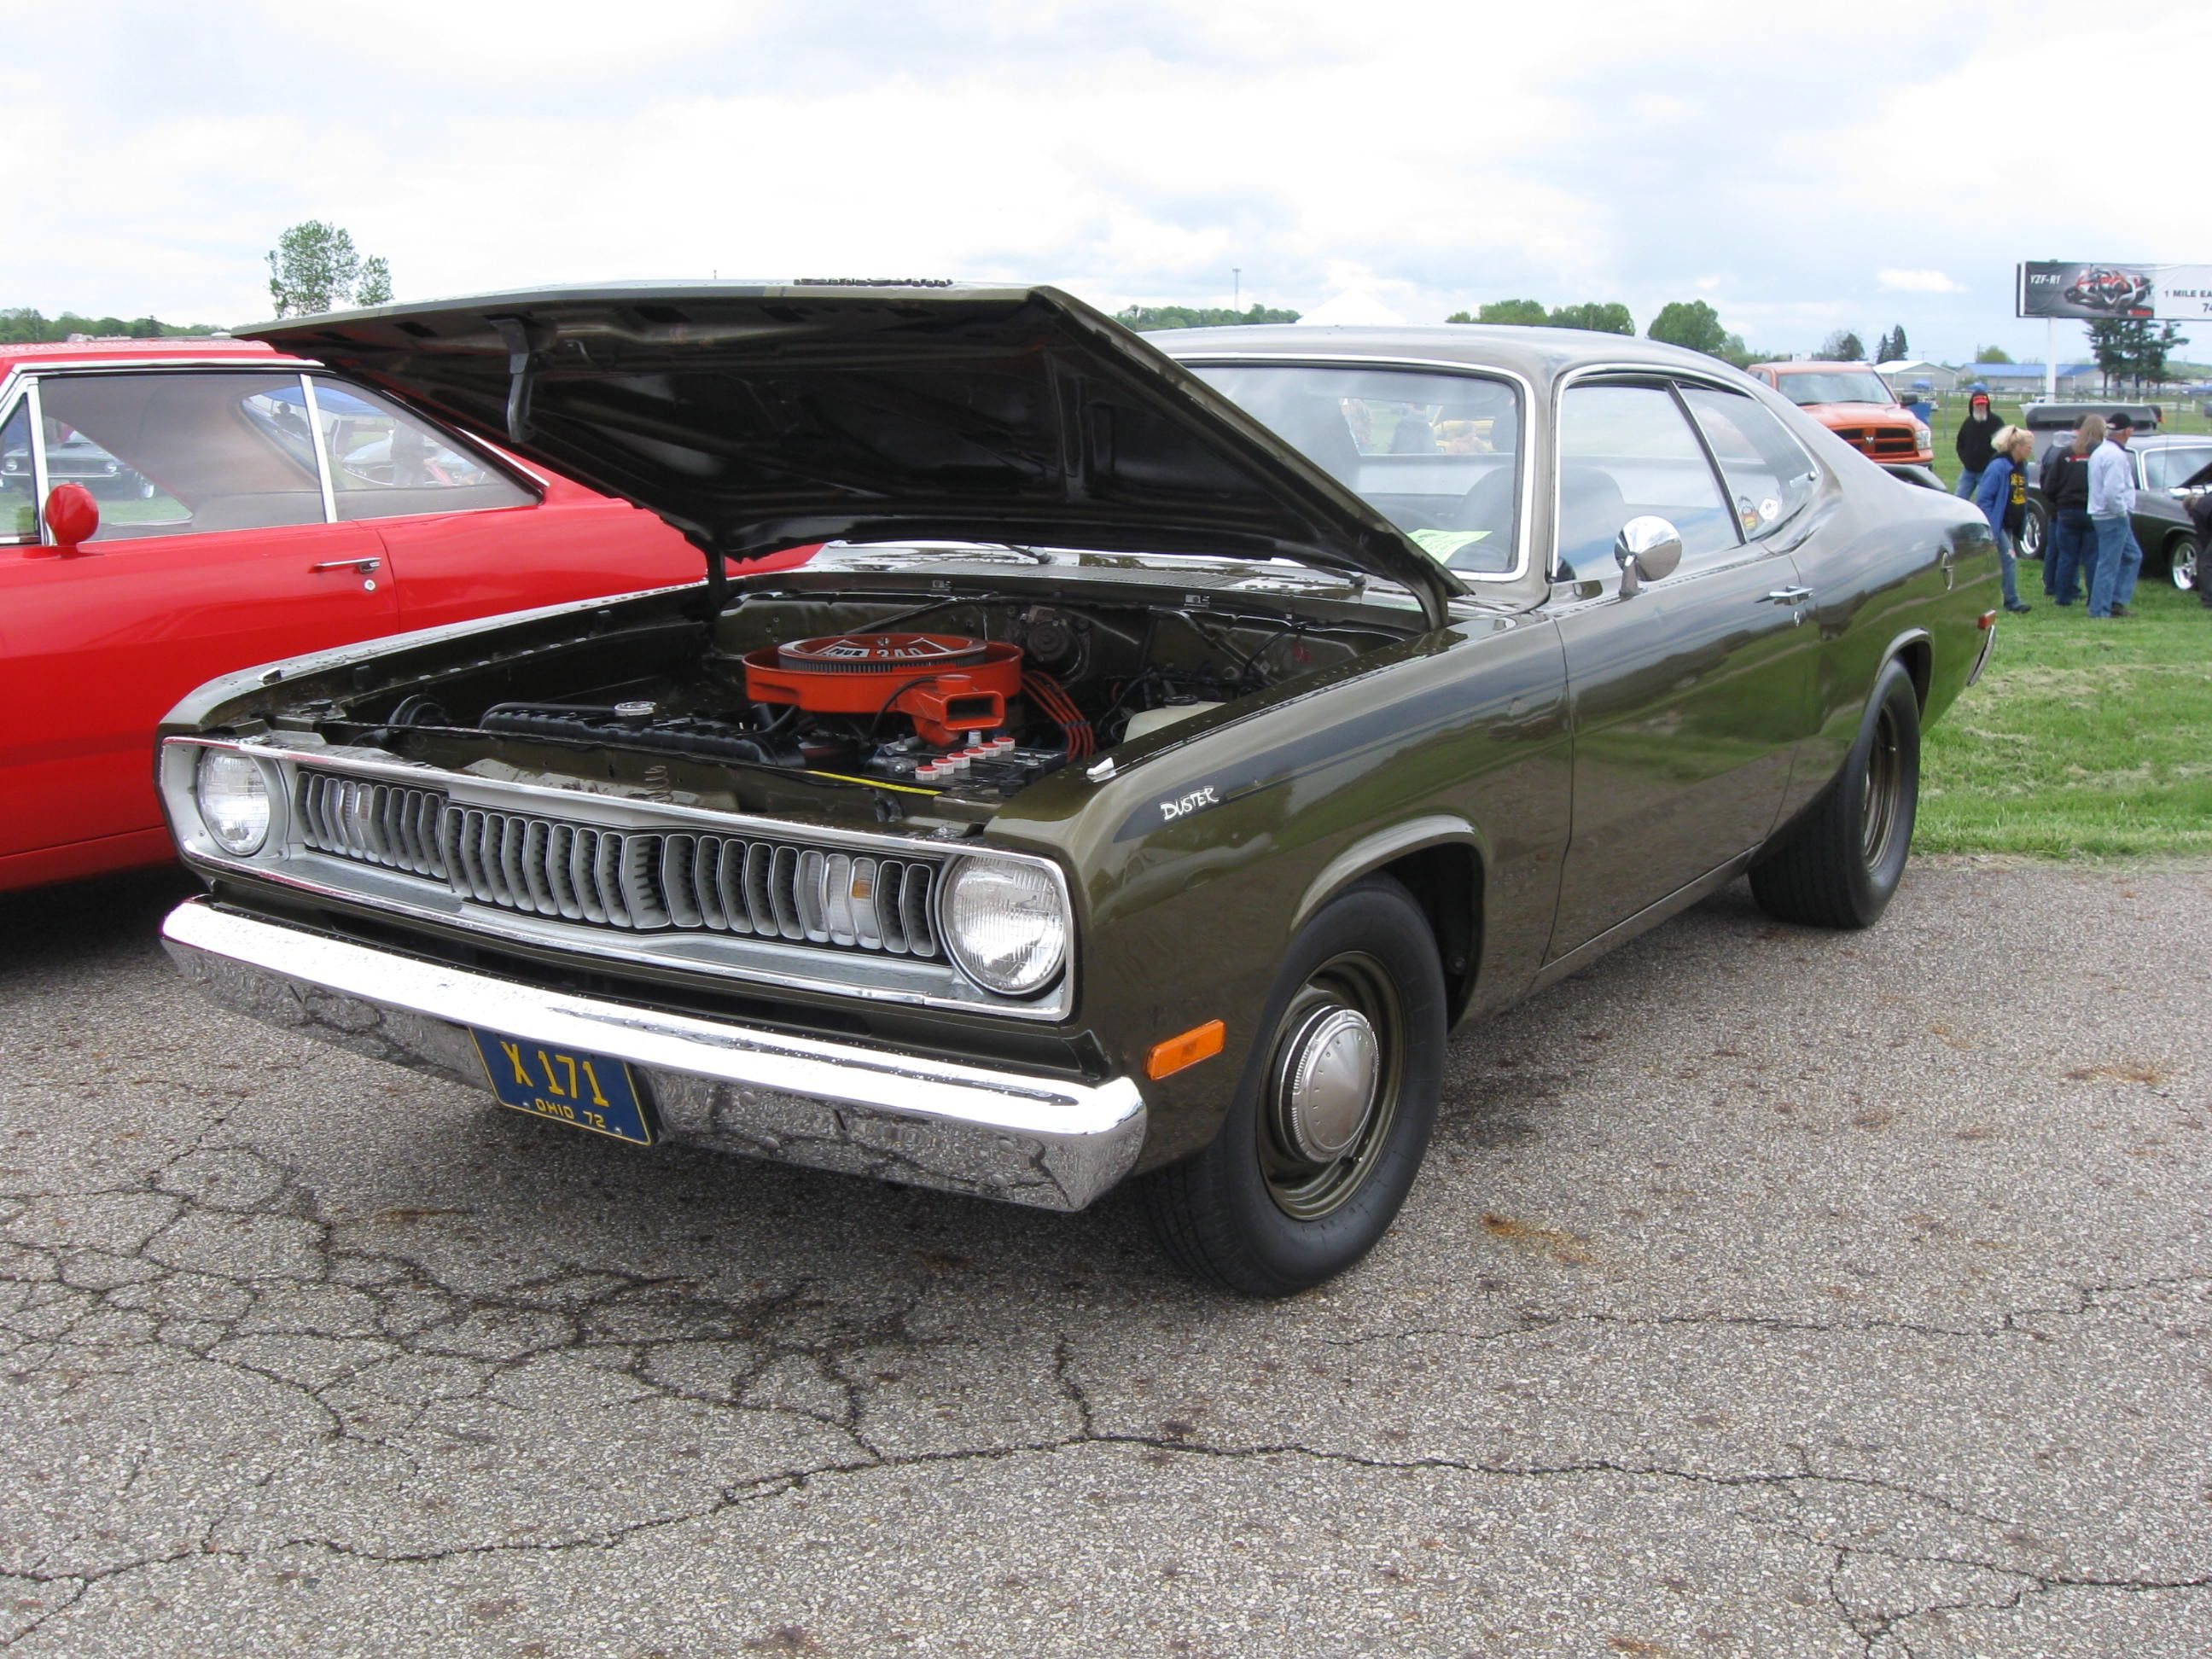 1972 plymouth duster 340 photo by mopar belle chrysler power classic rh pinterest com plymouth duster production 1975 plymouth duster super stock